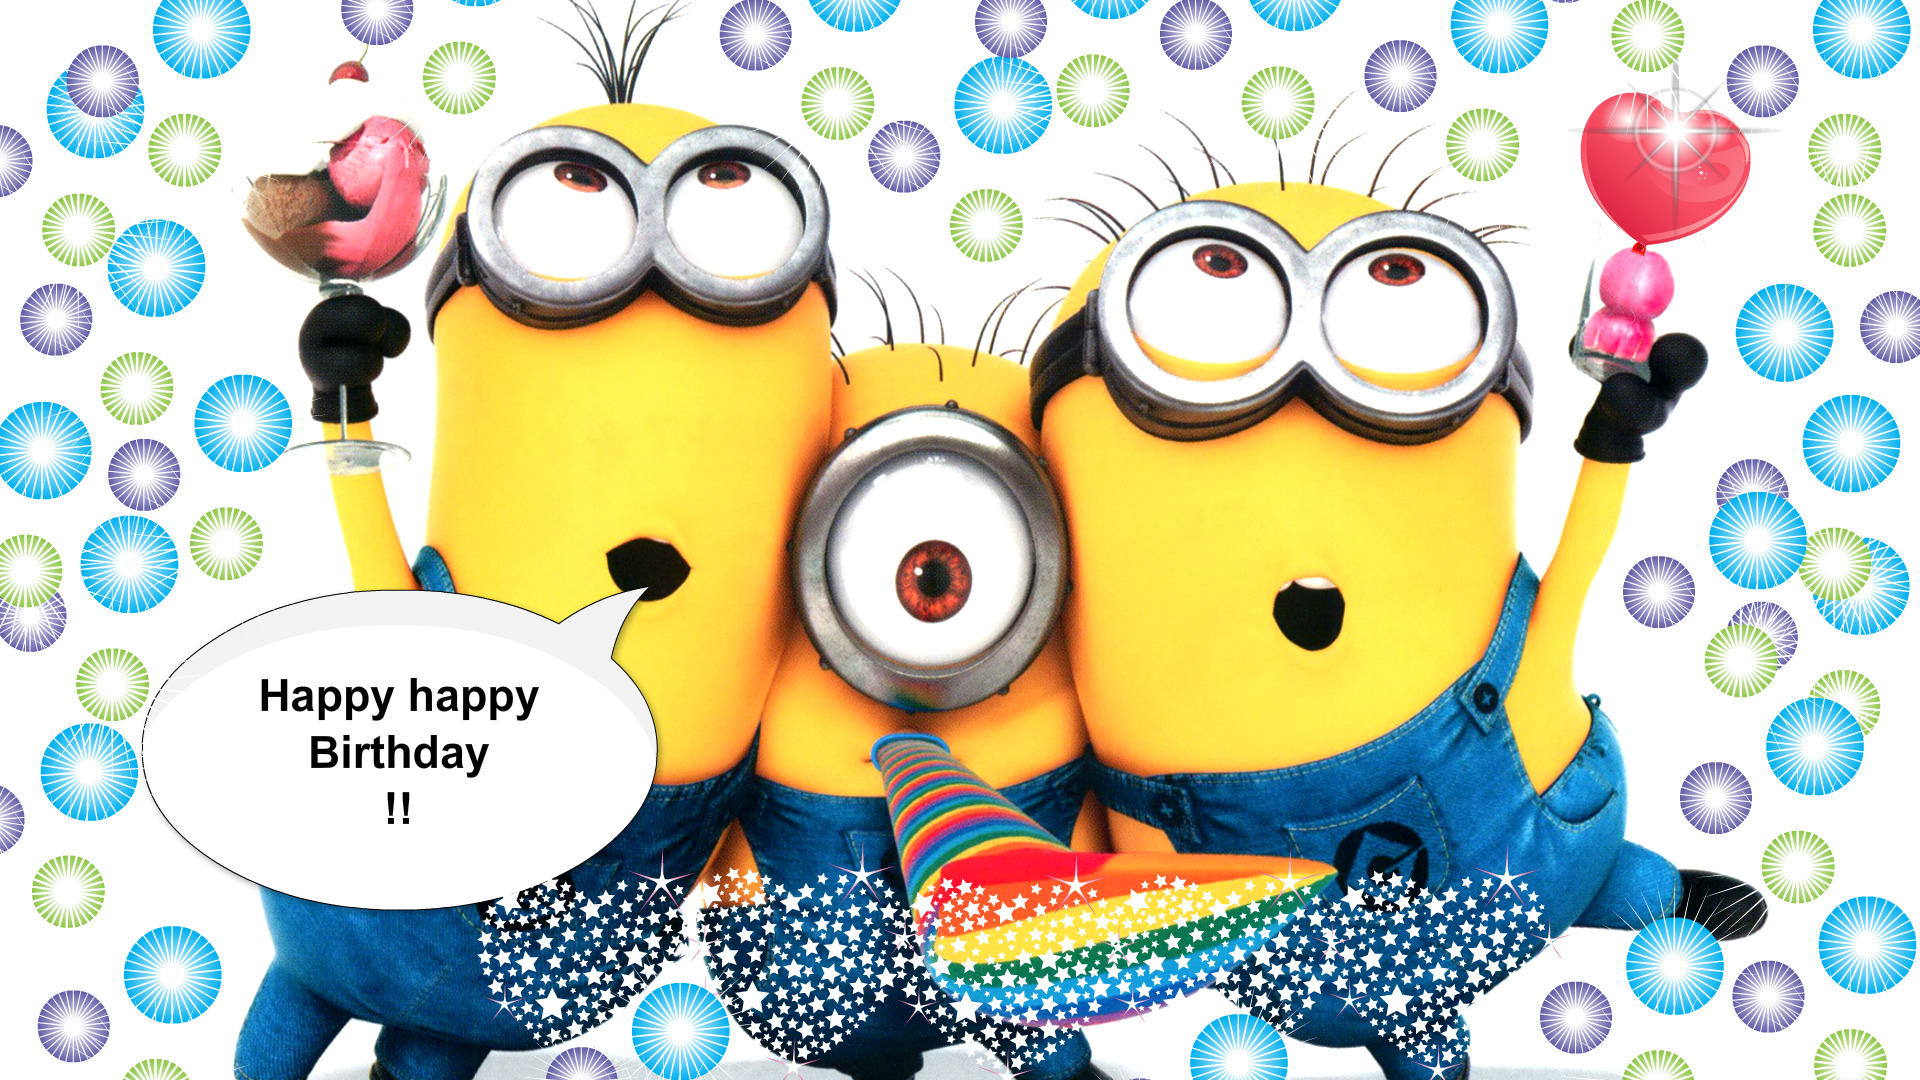 Happy Birthday Minions Wallpaper